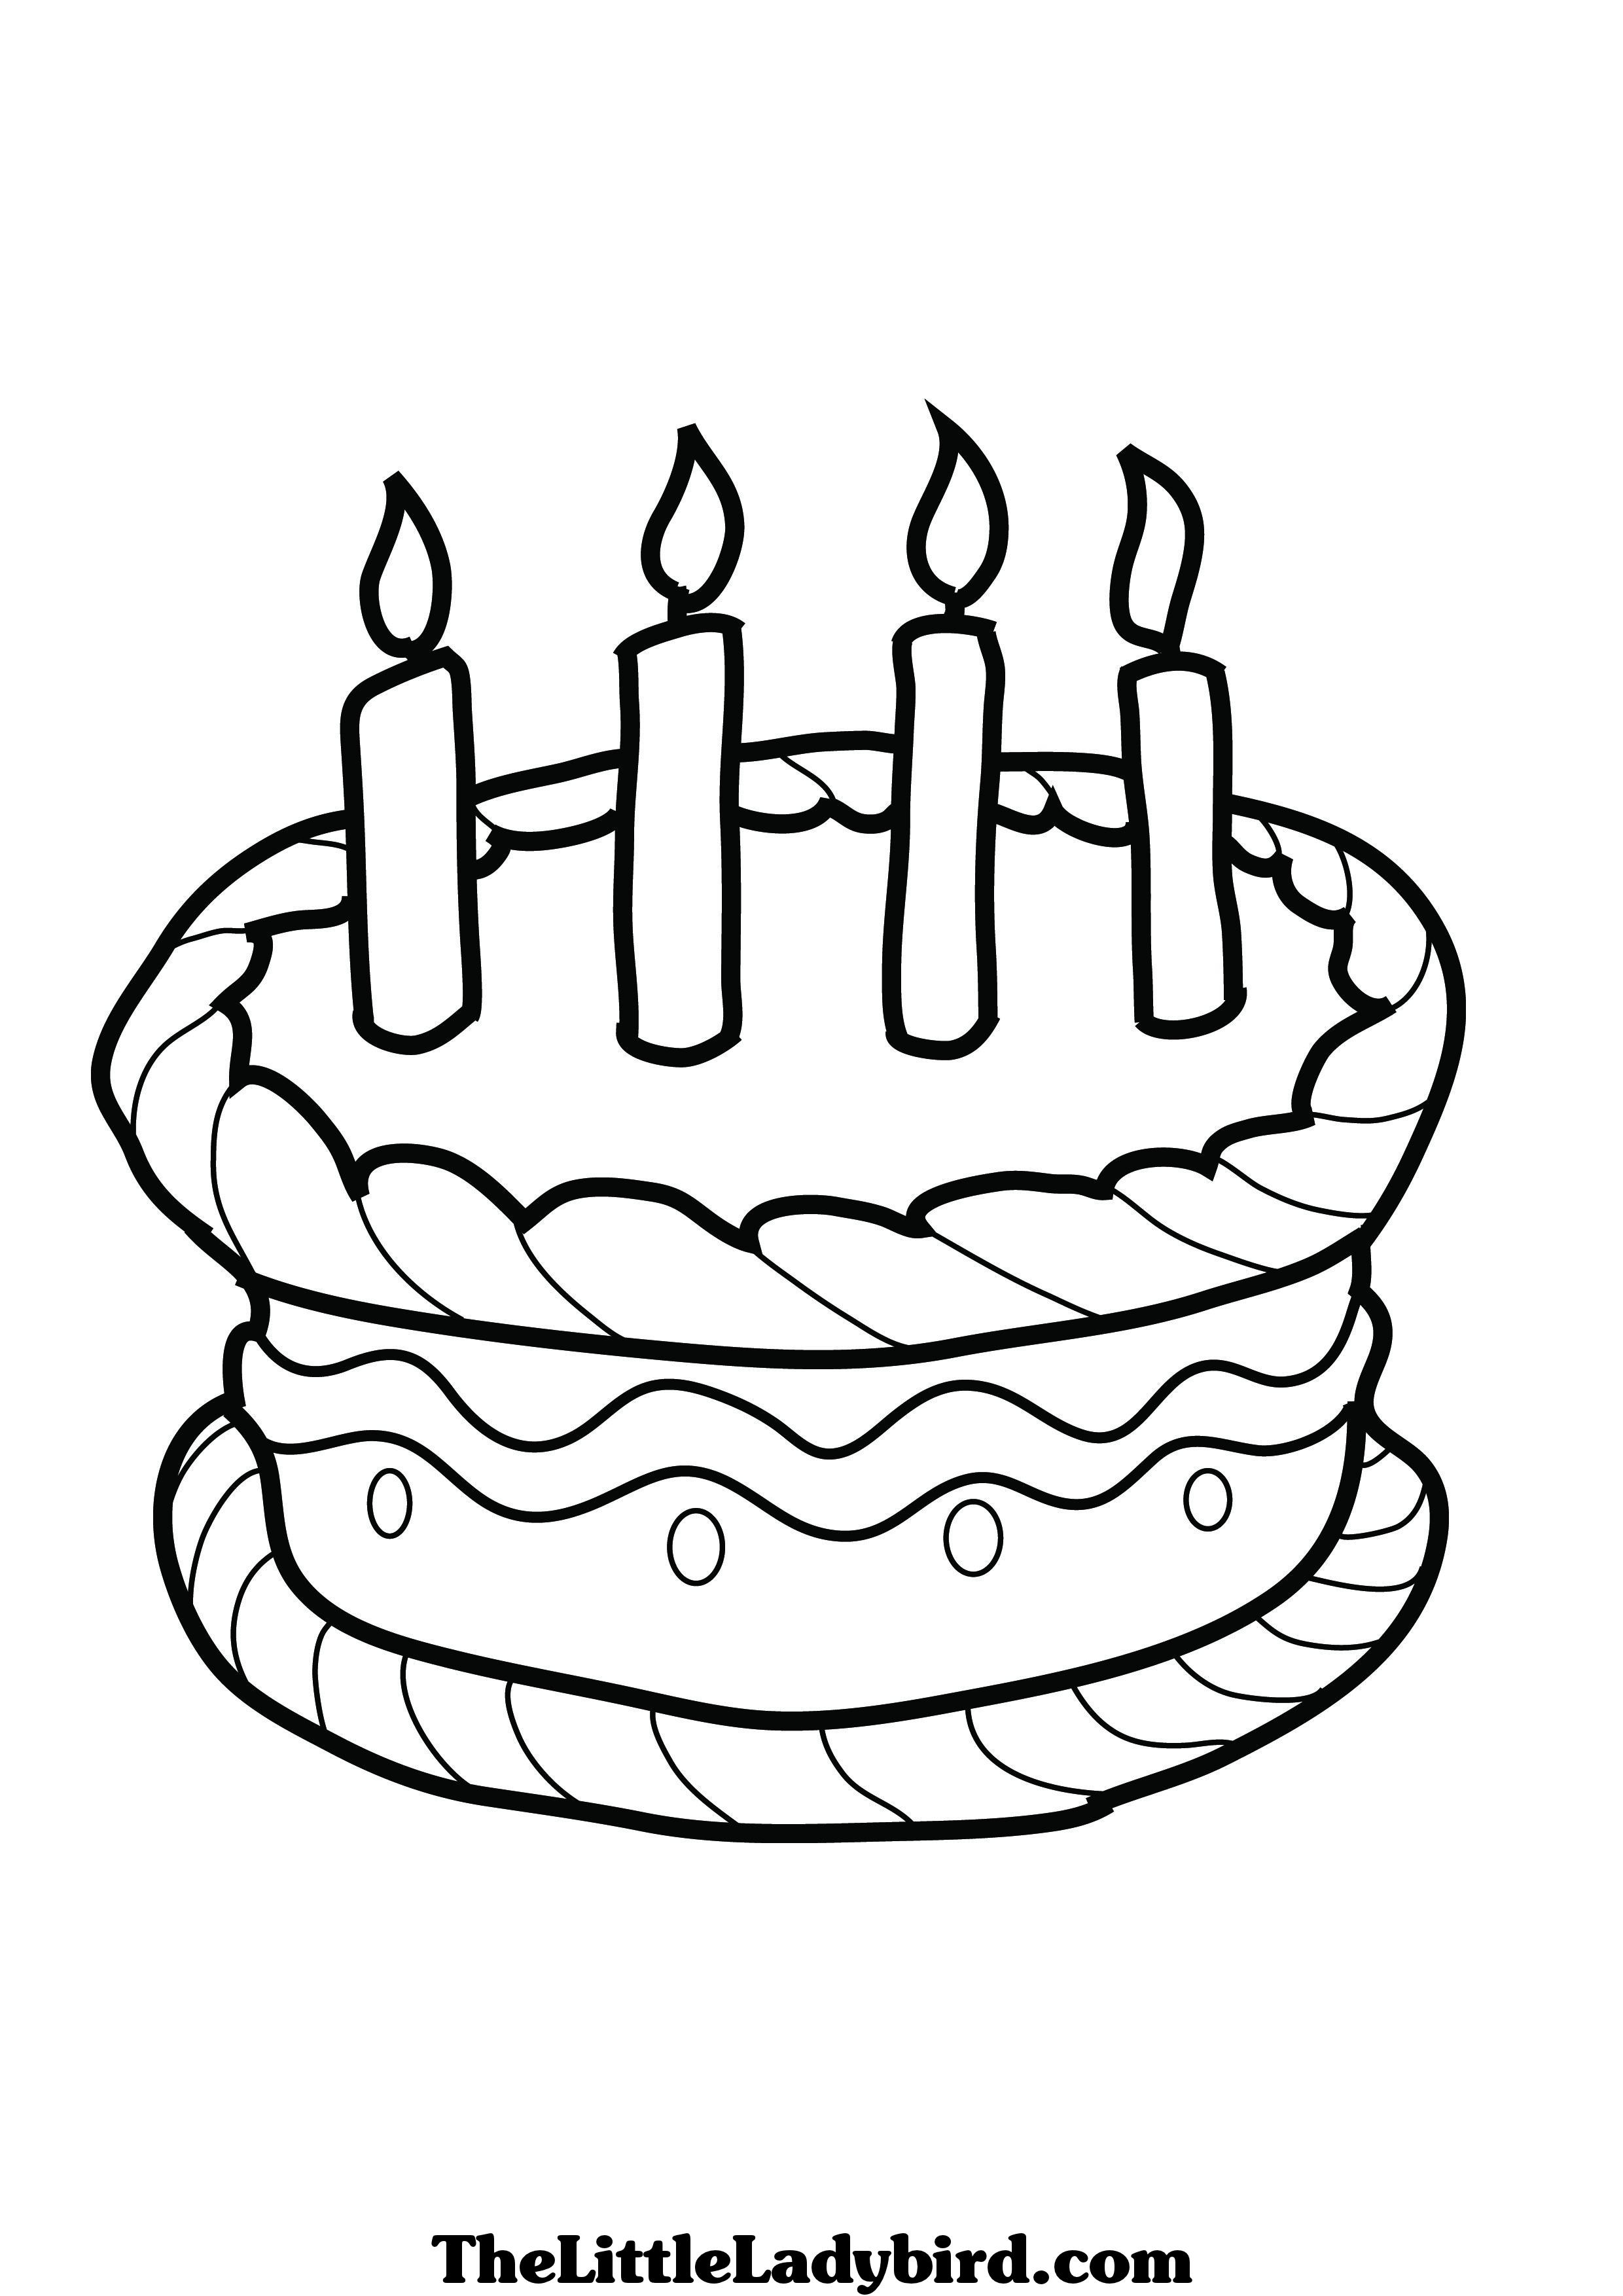 2480x3508 Birthday Cake Coloring Pages